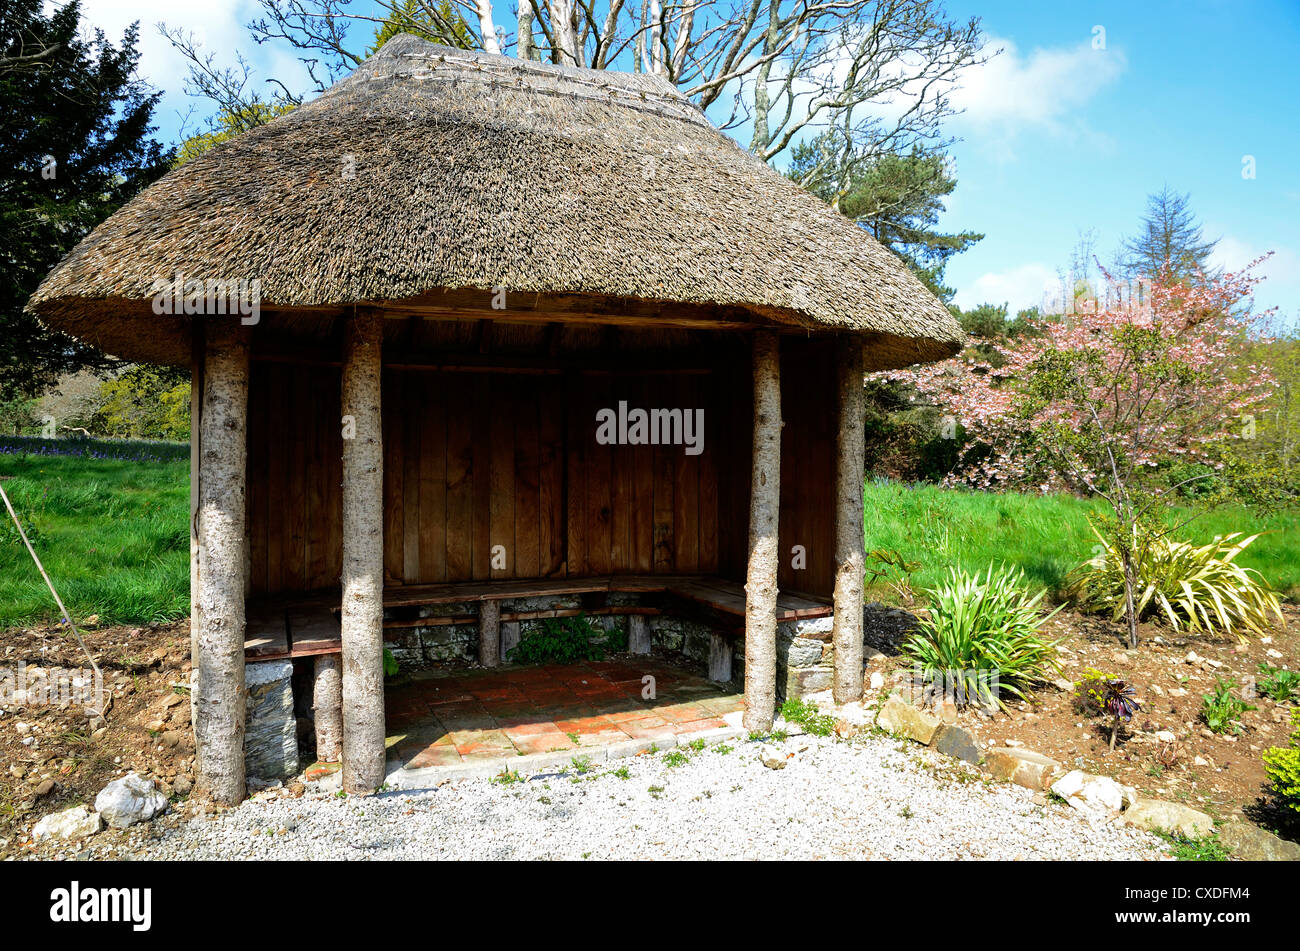 The summer house at Enys gardens near Falmouth in Cornwall, UK - Stock Image